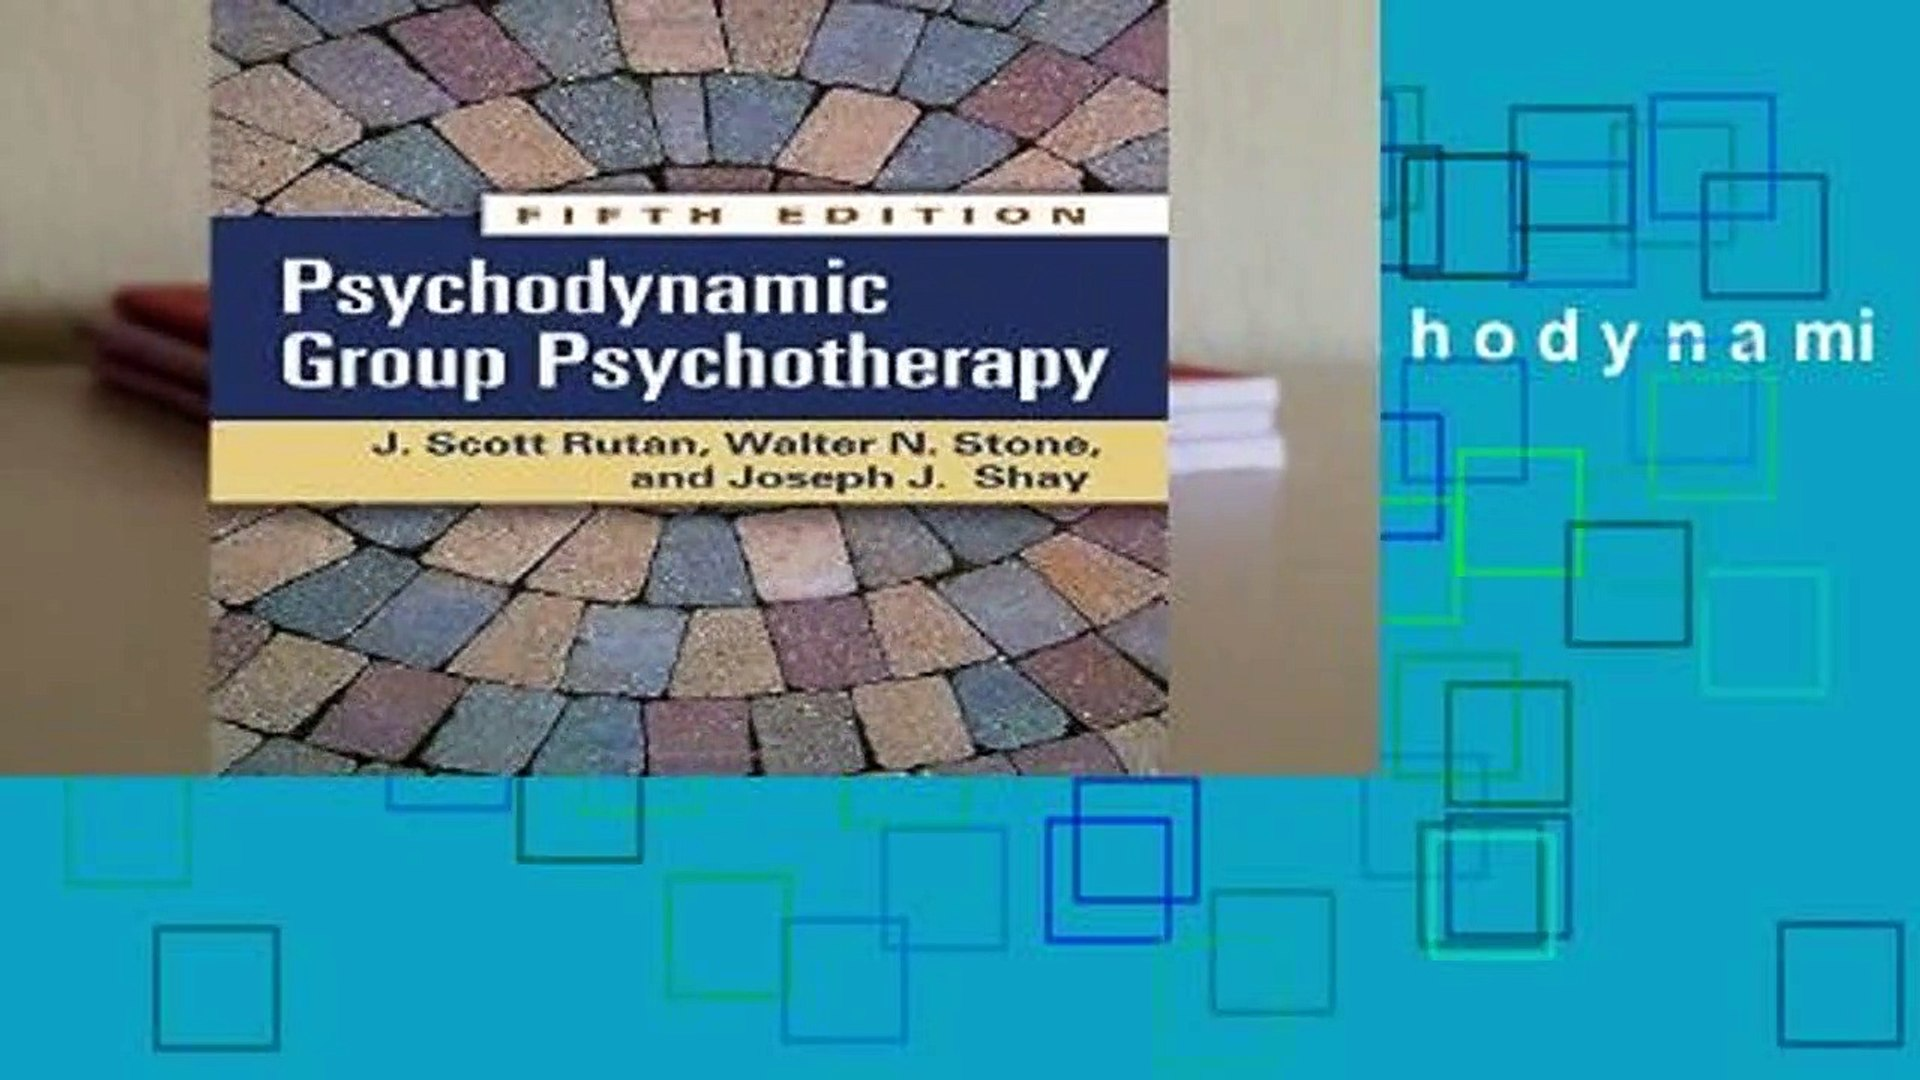 Psychodynamic Group Psychotherapy Fifth Edition